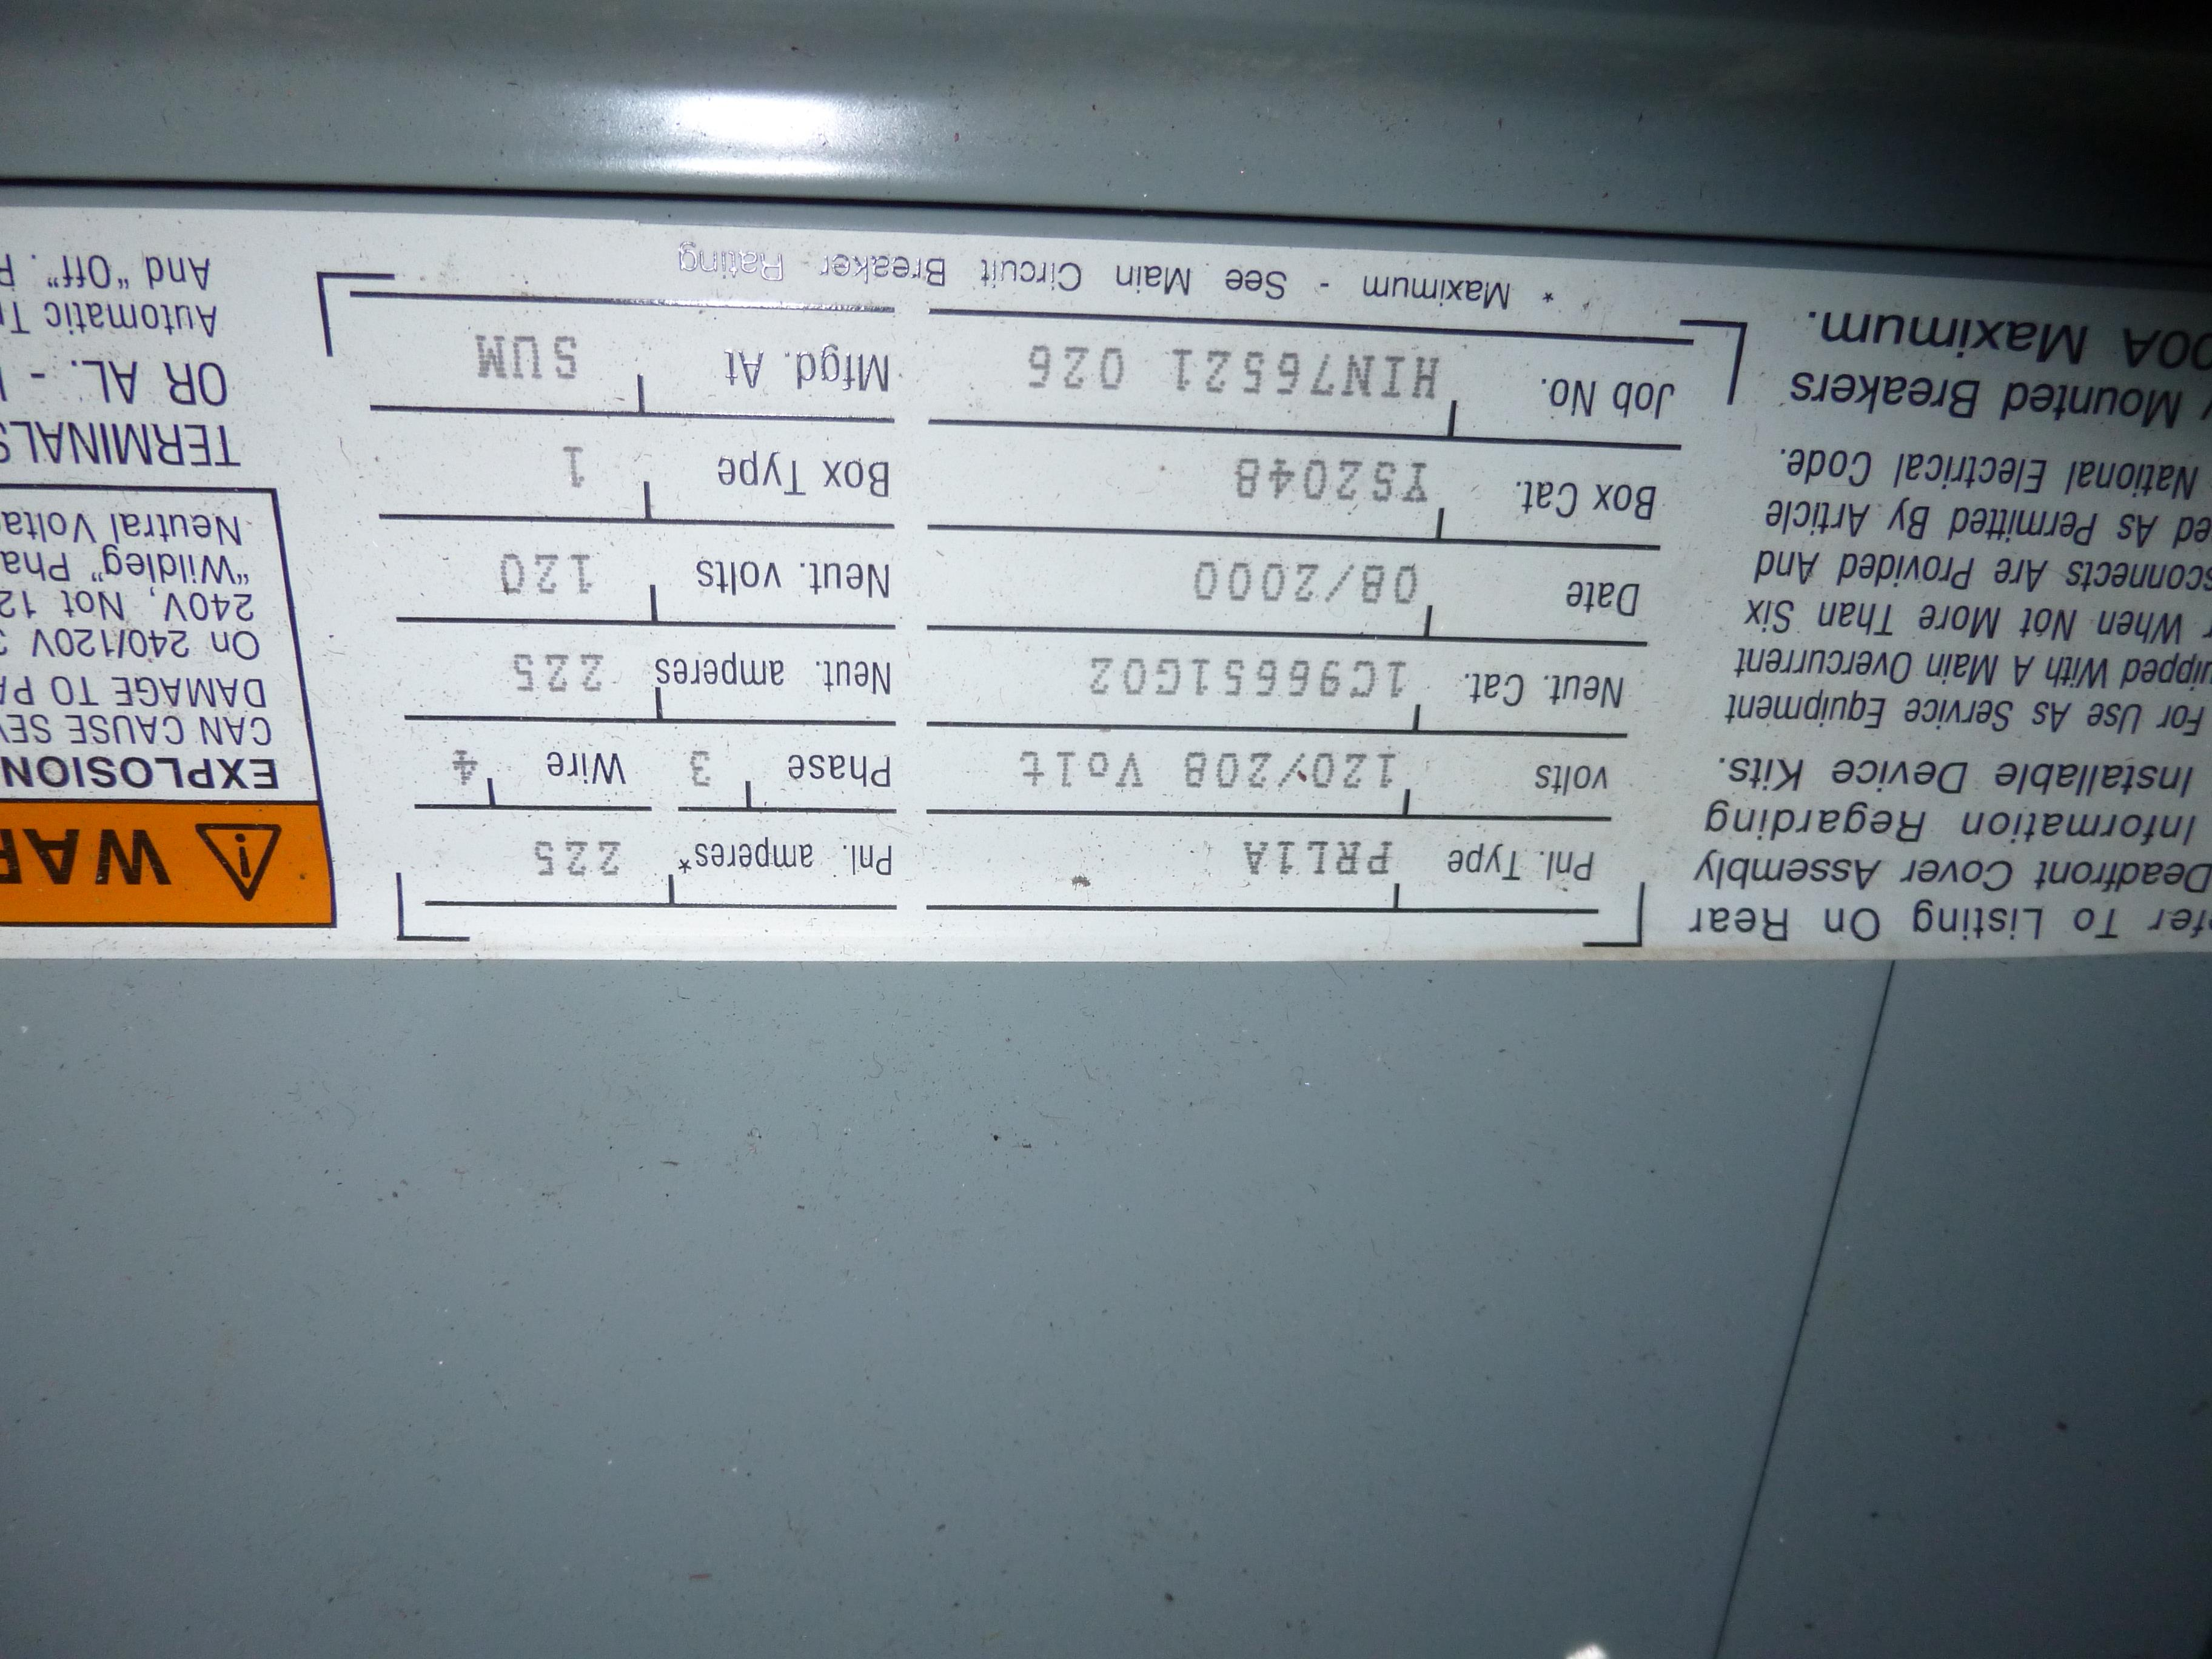 Lot 17 - Cutler Hammer model PRL1A, 225amp box, 120/208 volt, 3 phase, 4 wire, includes all breakers as